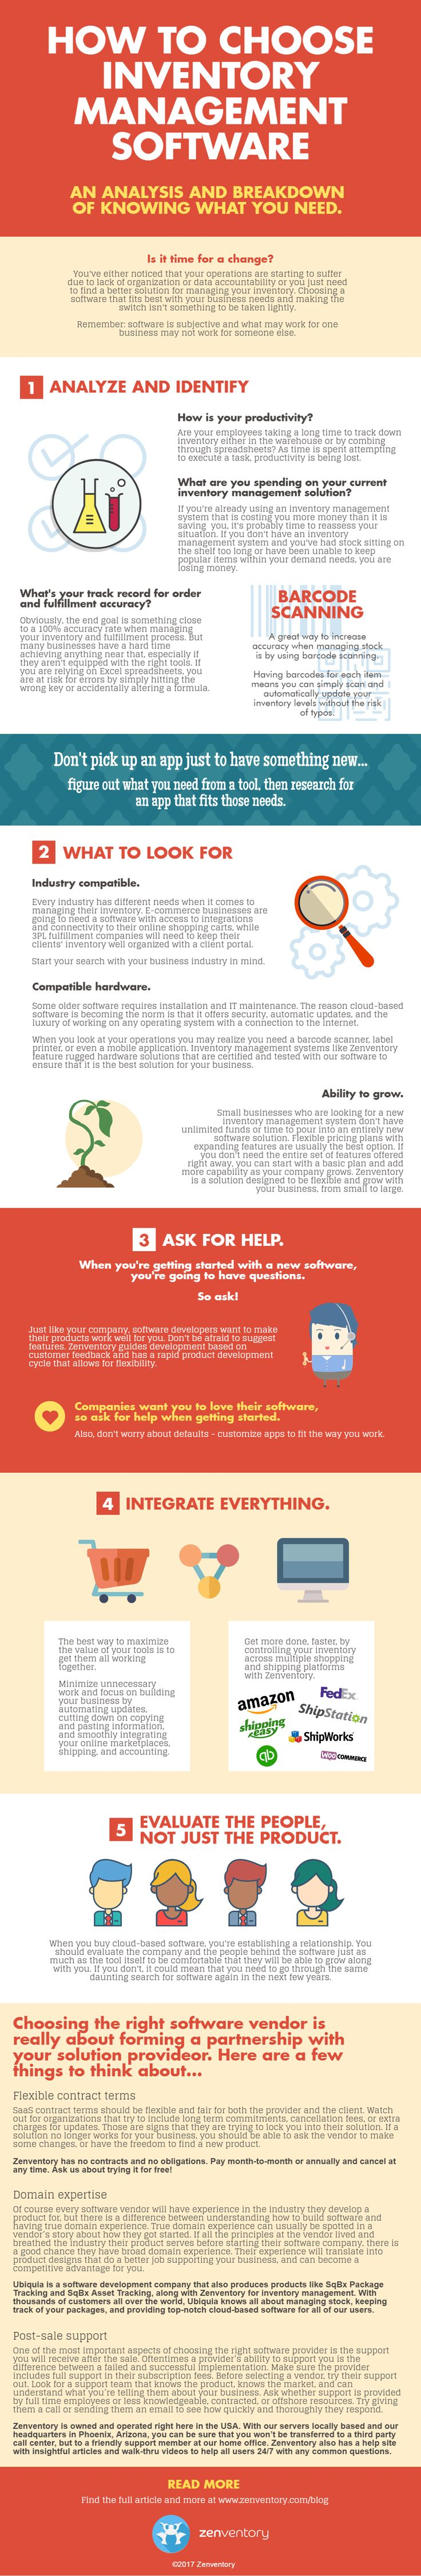 How to choose inventory management software infographic - Zenventory Inventory Management